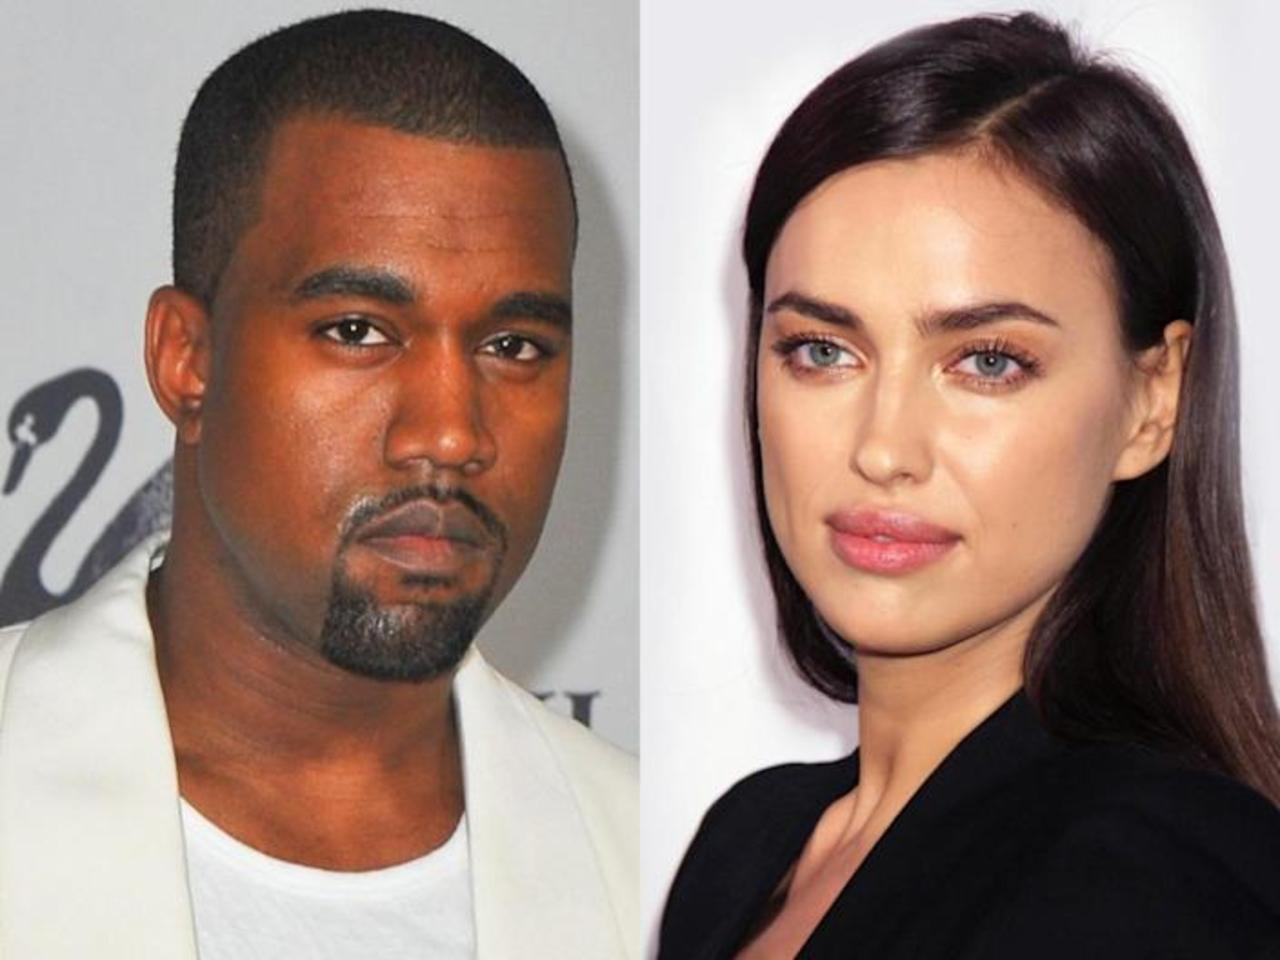 Kanye West's Relationship With Irina Shayk May Not Be Such a New Thing